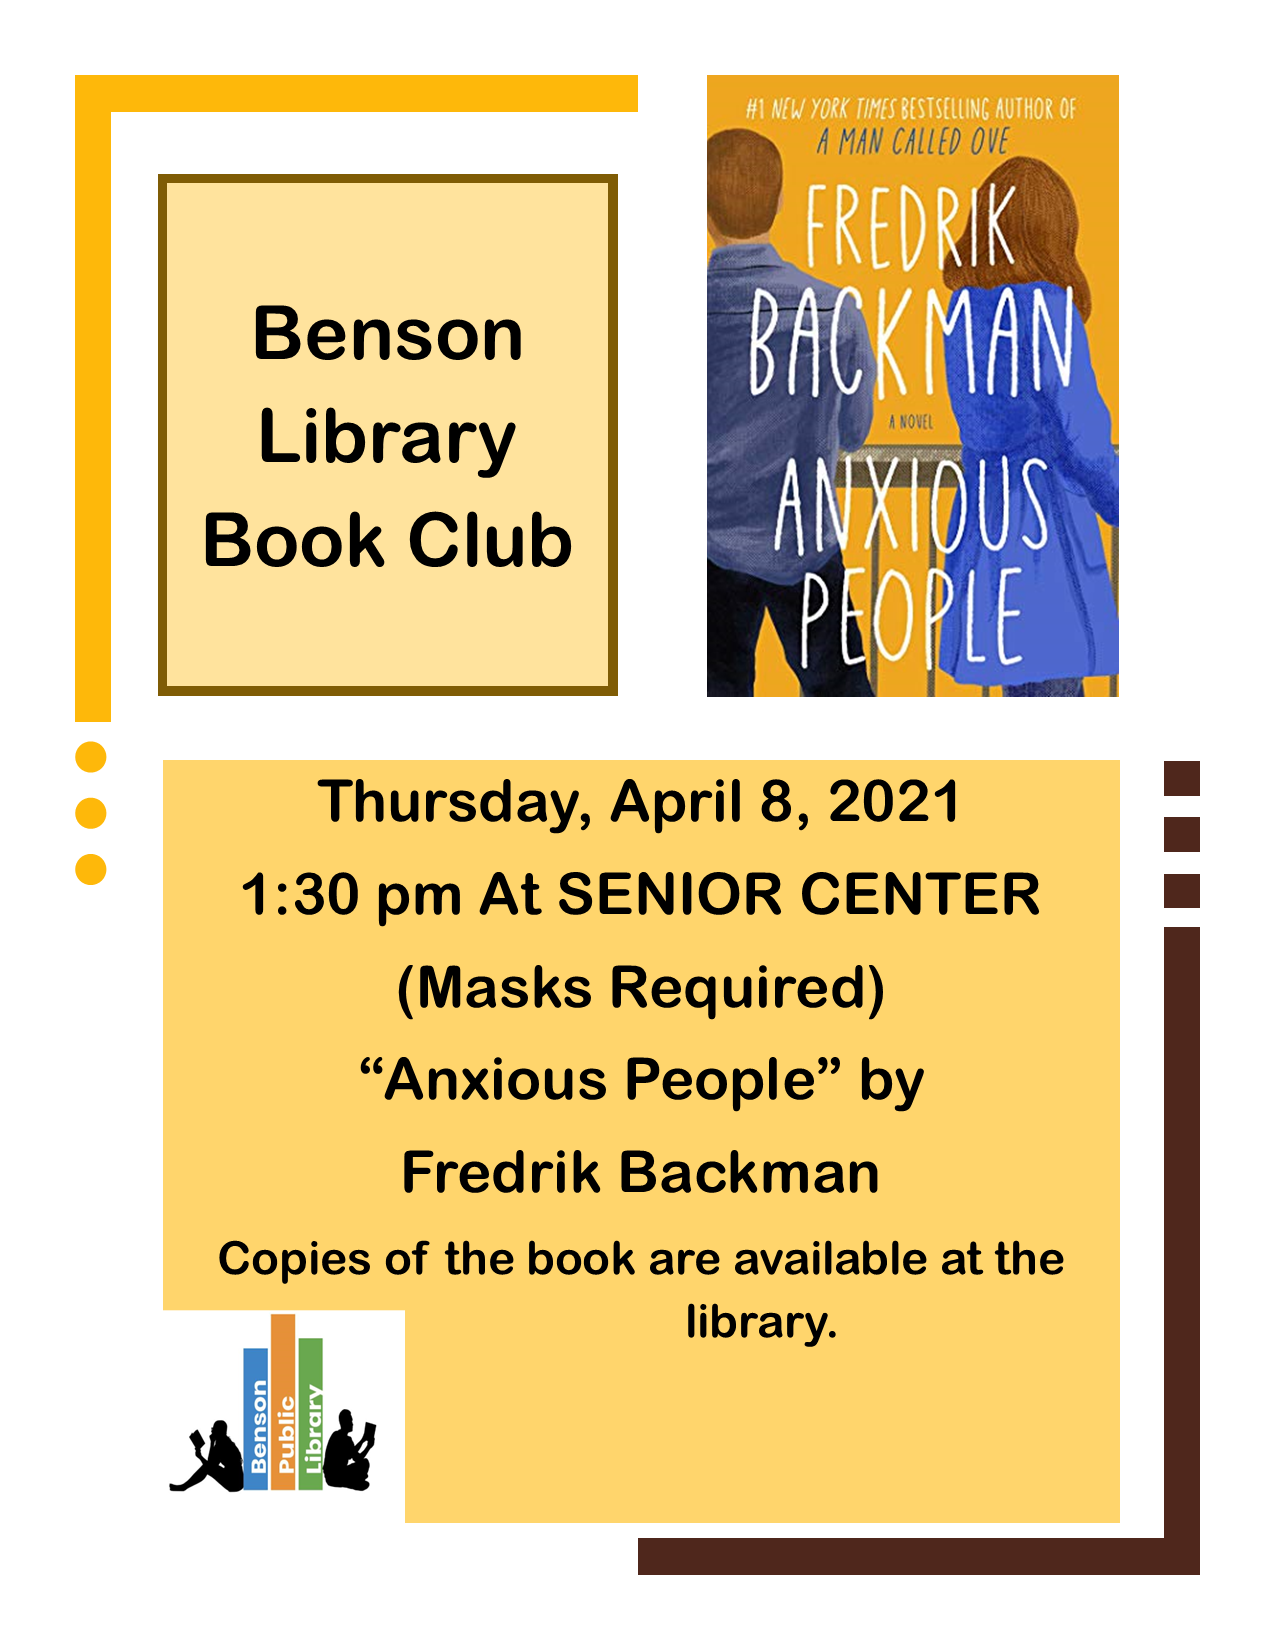 Join us for library book club on Thursday, April 8th at 1:30 p.m. at the Senior Center. Masks are required. The book is 'Anxious People' by Fredrik Backman.